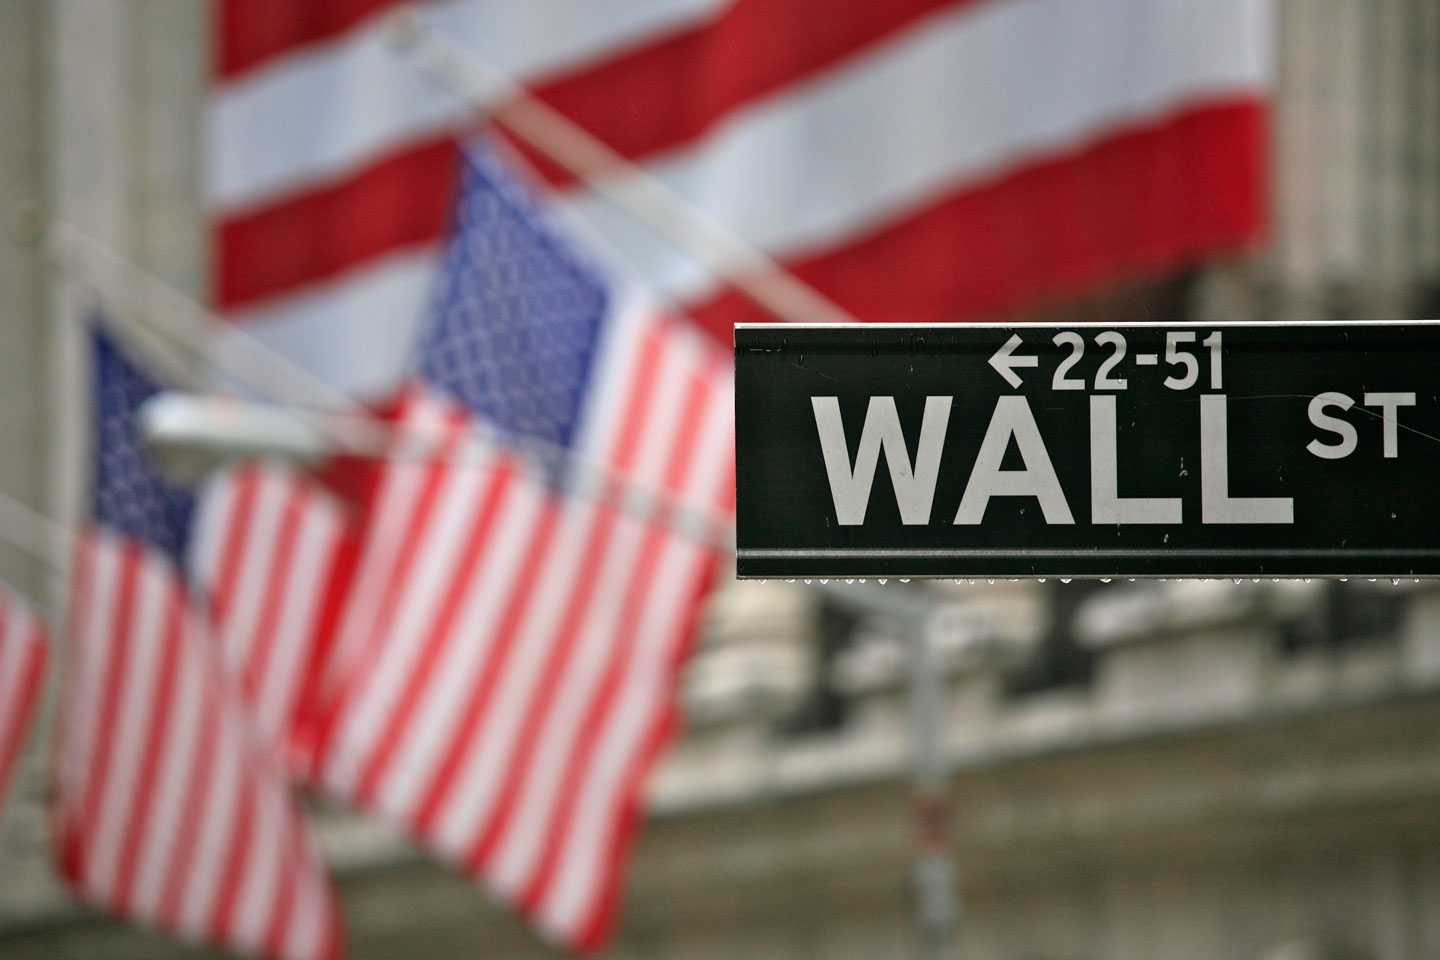 Stocks cautiously higher following Syria threat sell-off